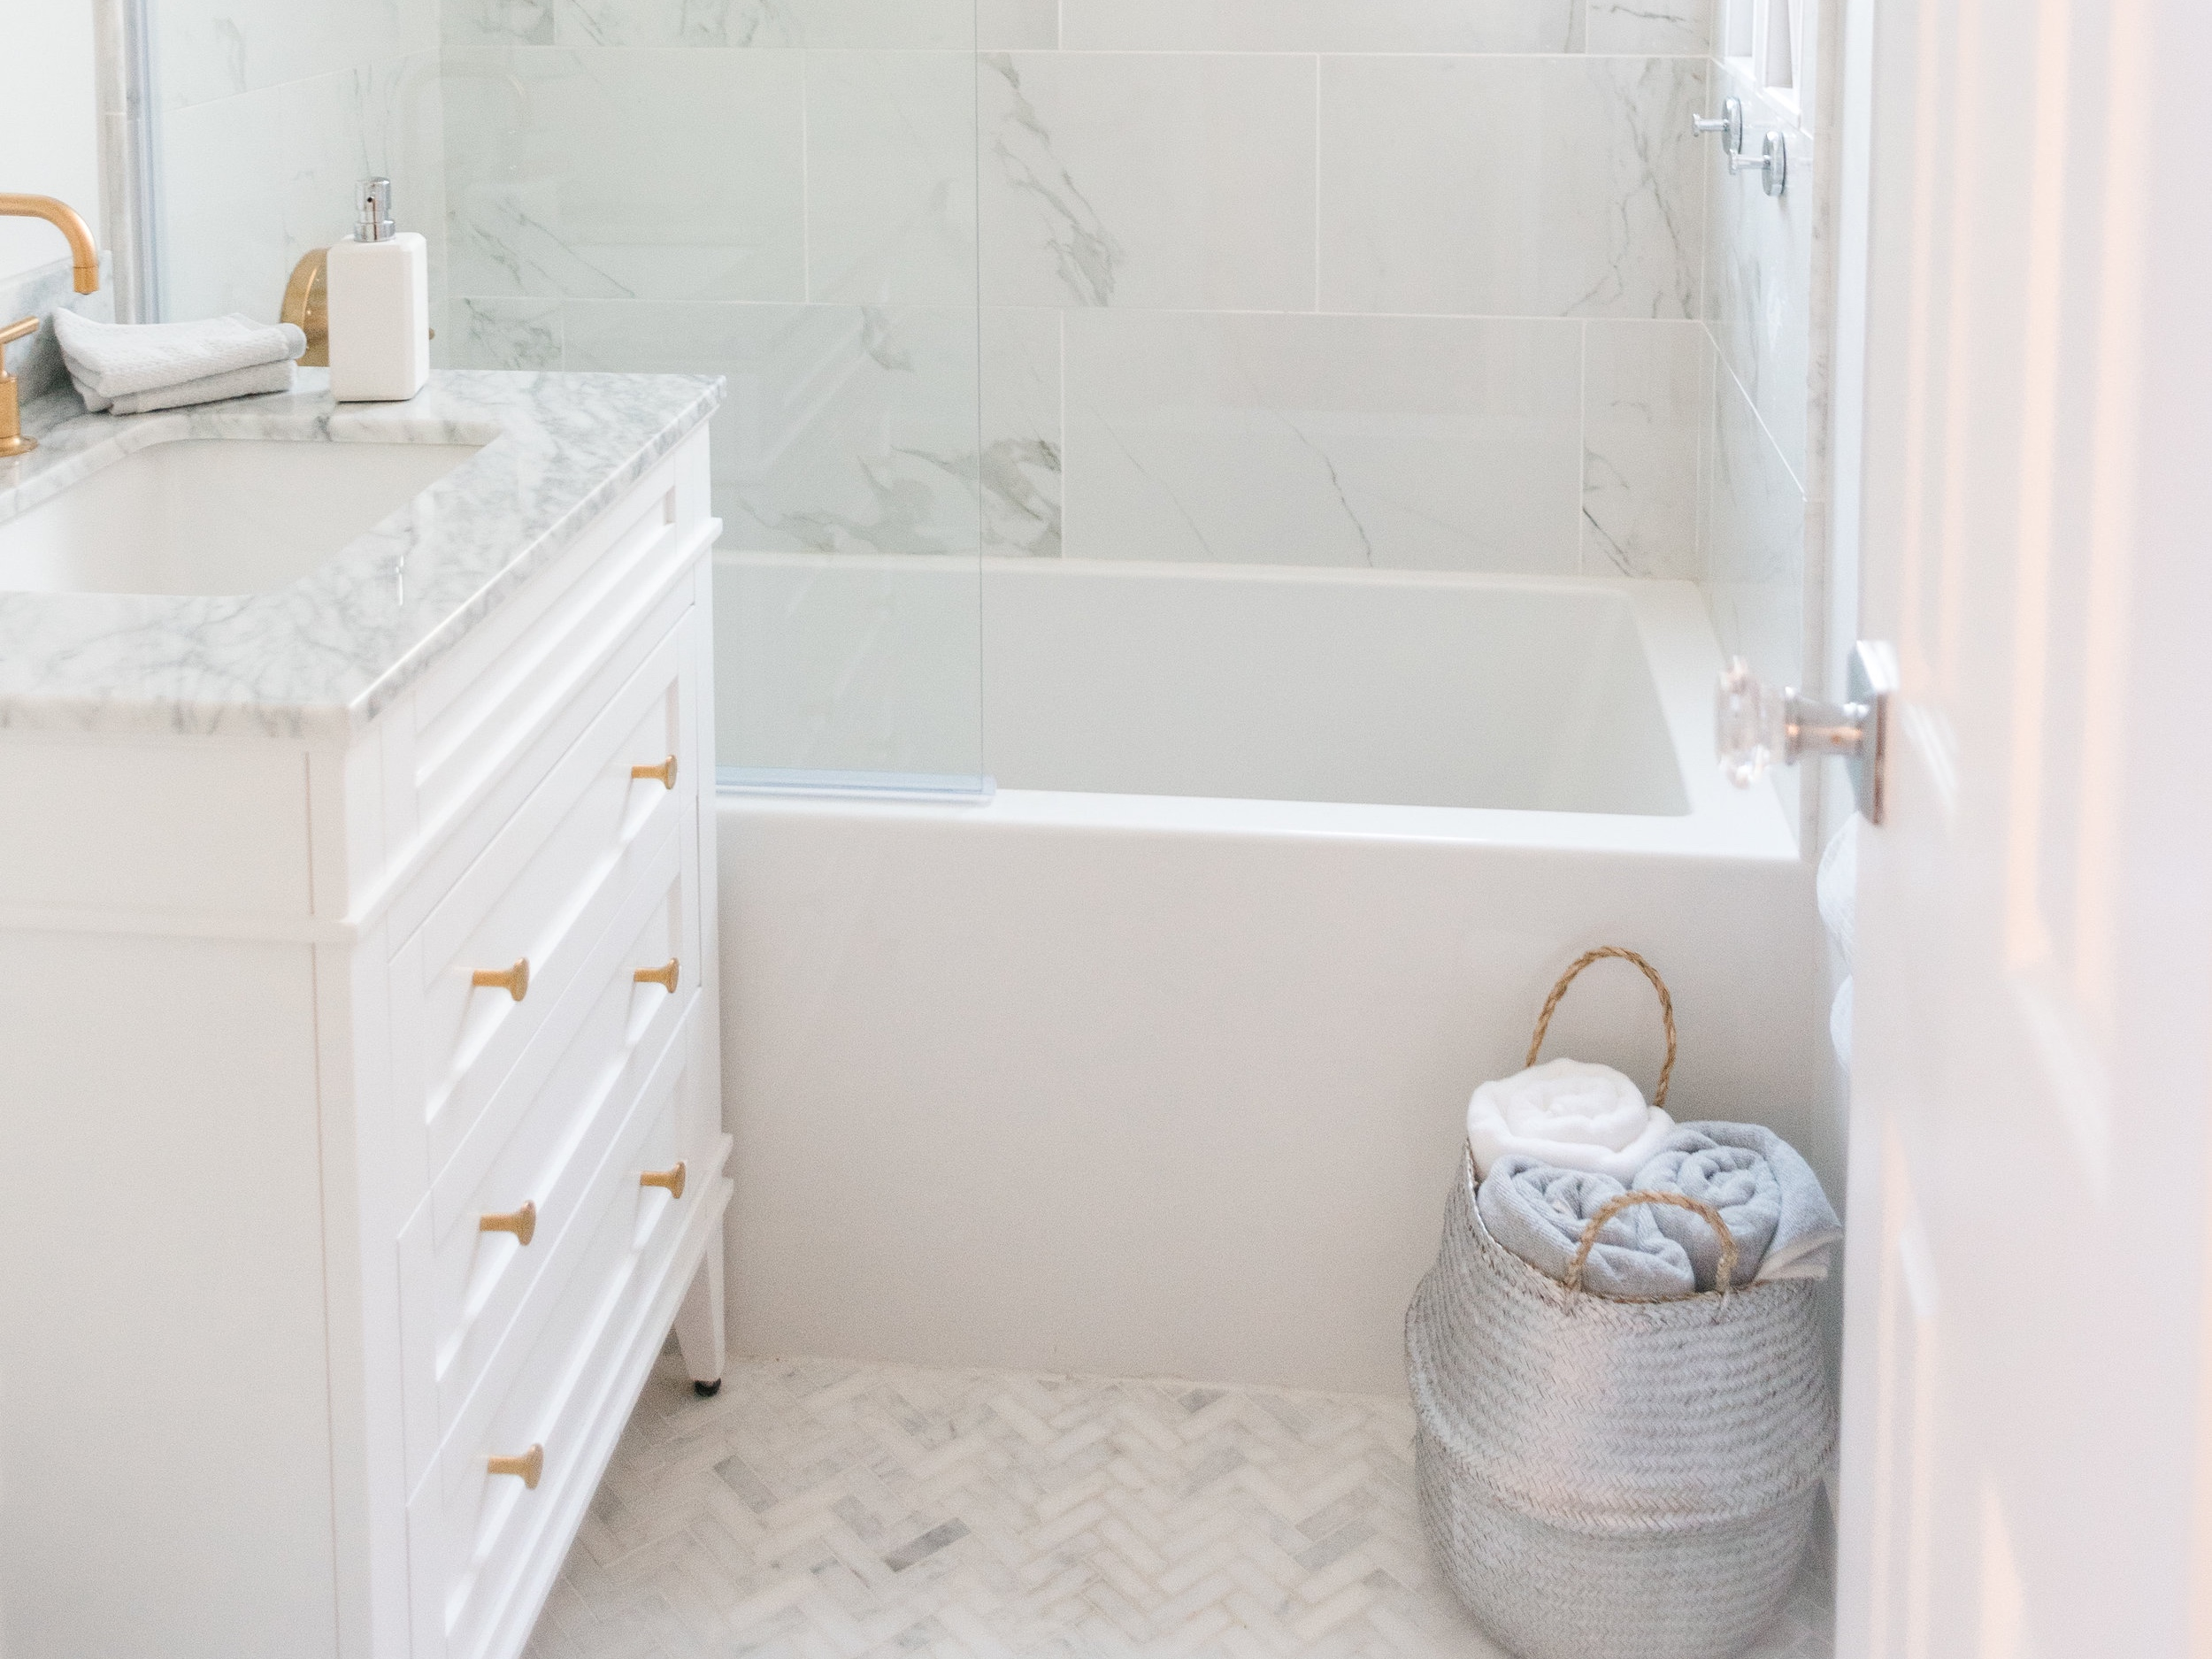 Before And After Transforming Our Bathroom From A 1940s Mess To A Classic Beauty Cronikas